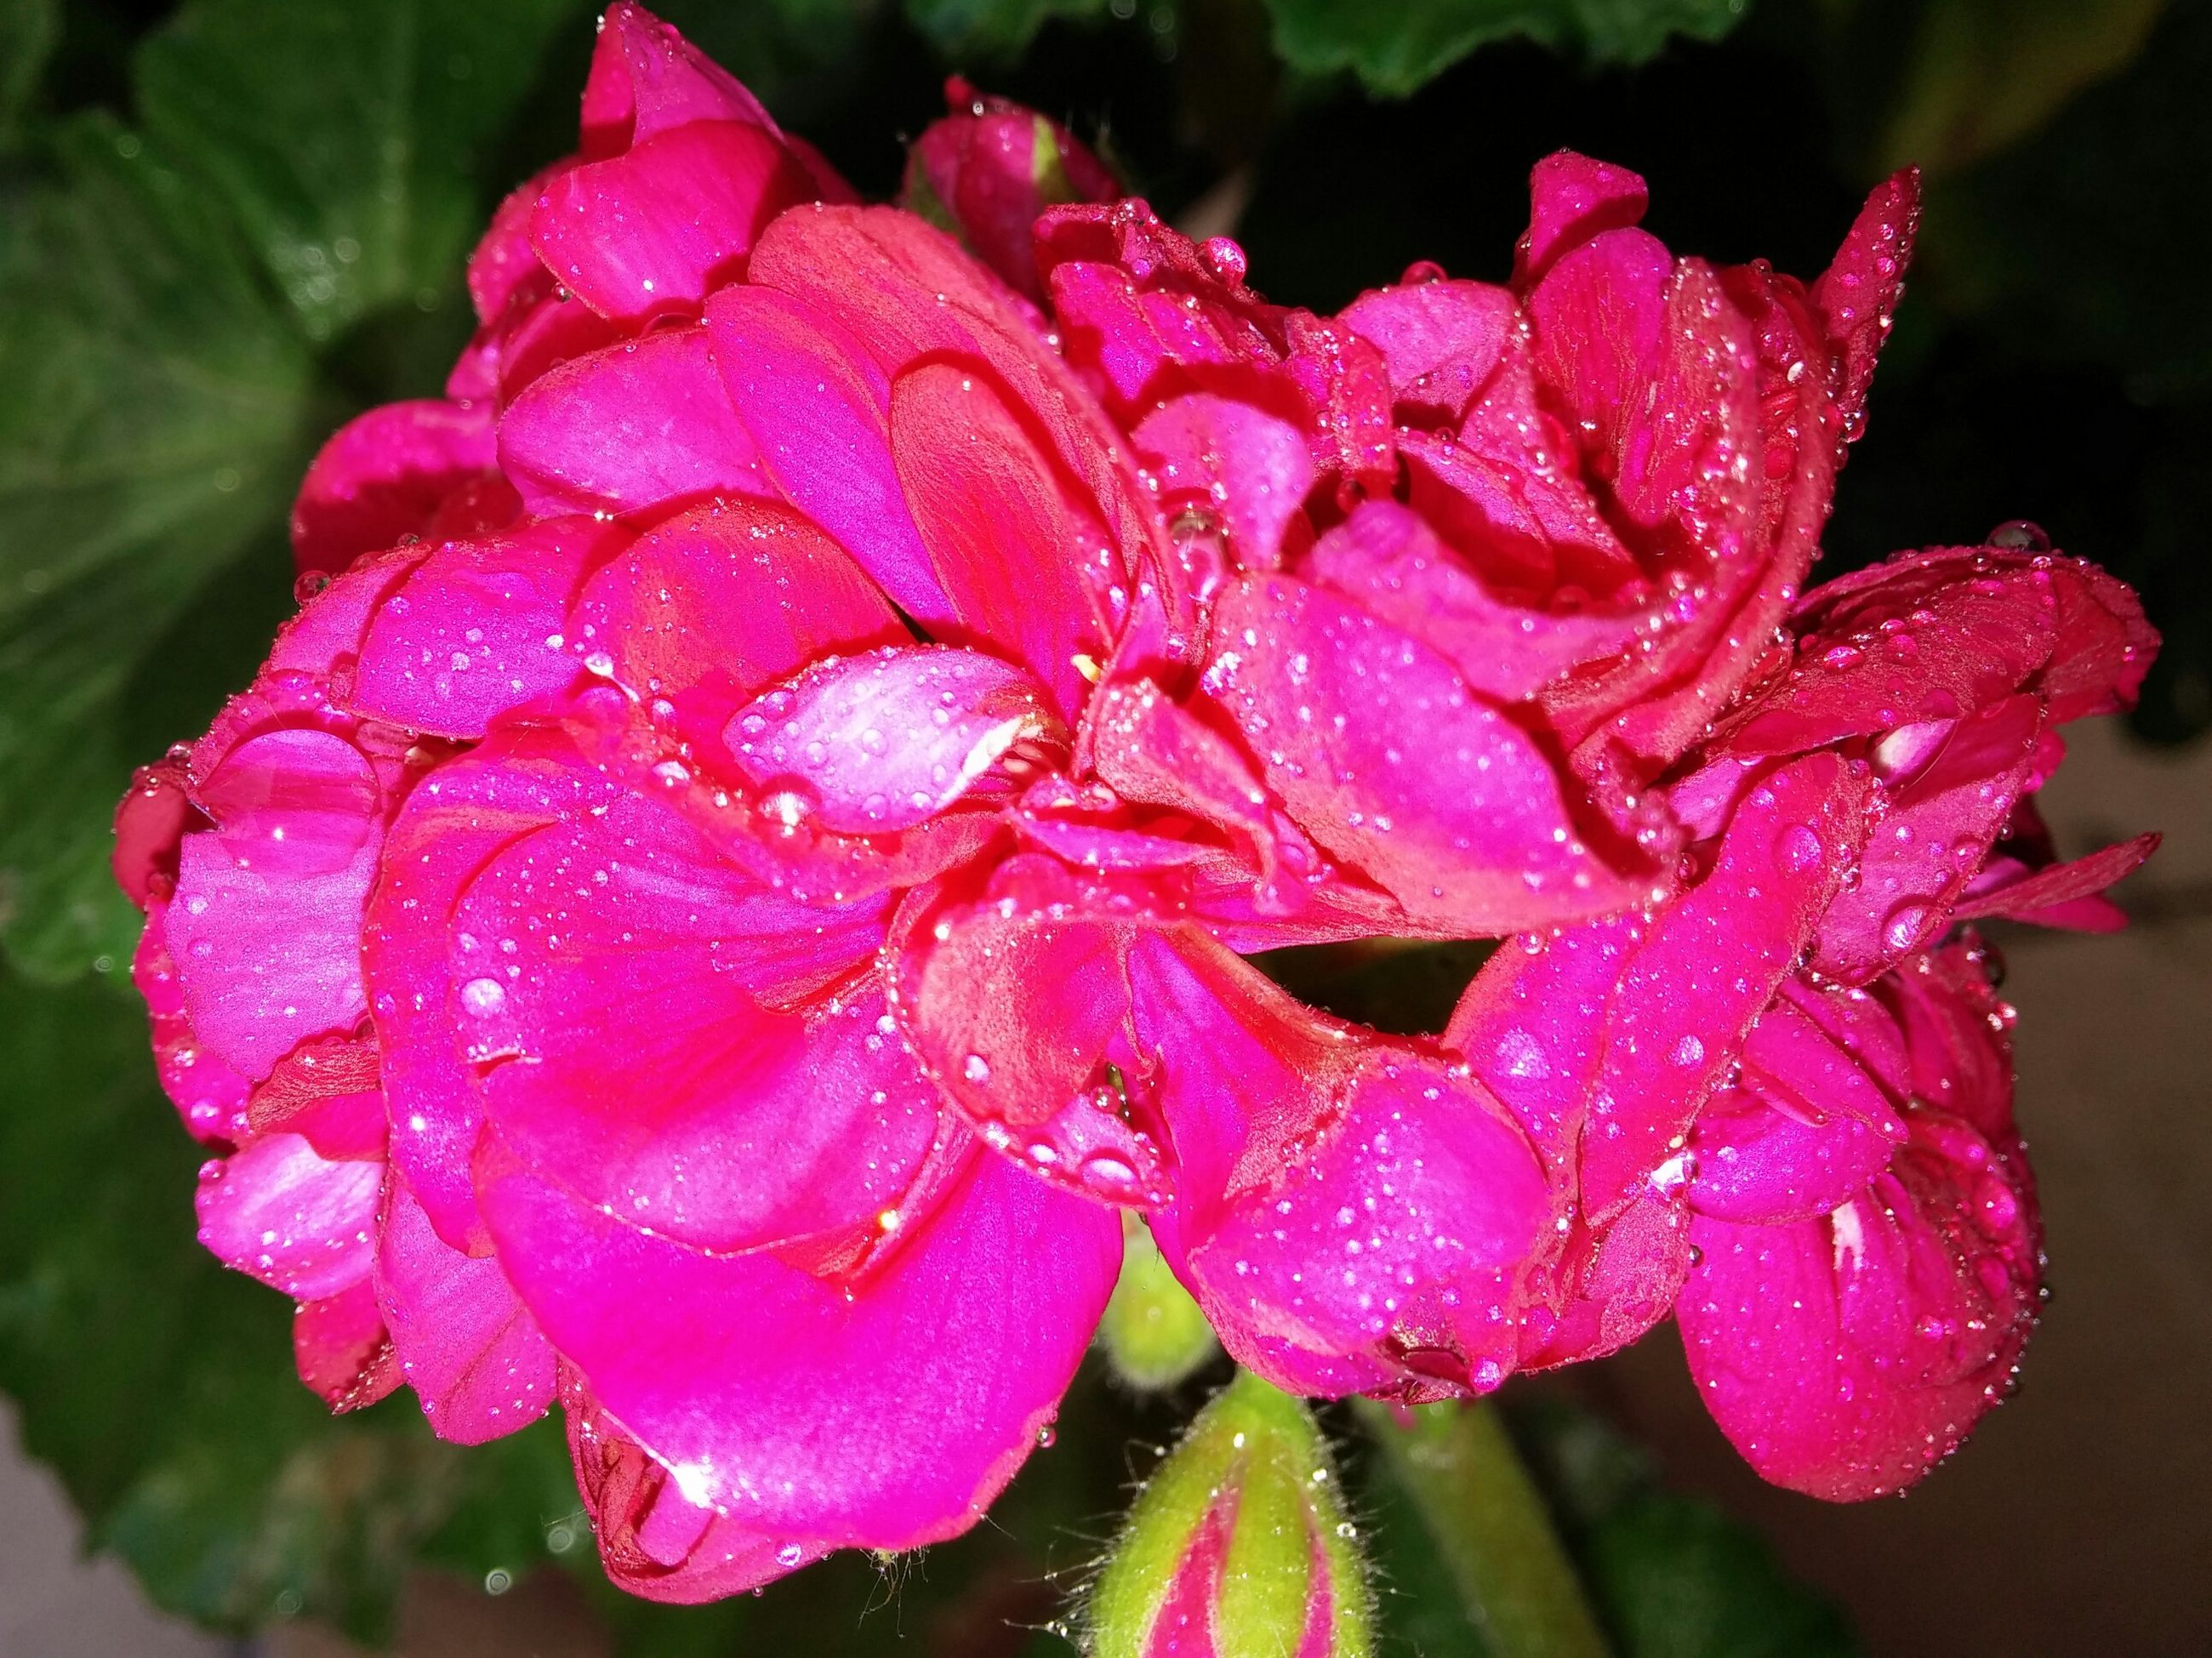 drop, flower, petal, freshness, wet, water, fragility, flower head, close-up, beauty in nature, pink color, dew, growth, raindrop, focus on foreground, blooming, nature, rain, plant, rose - flower